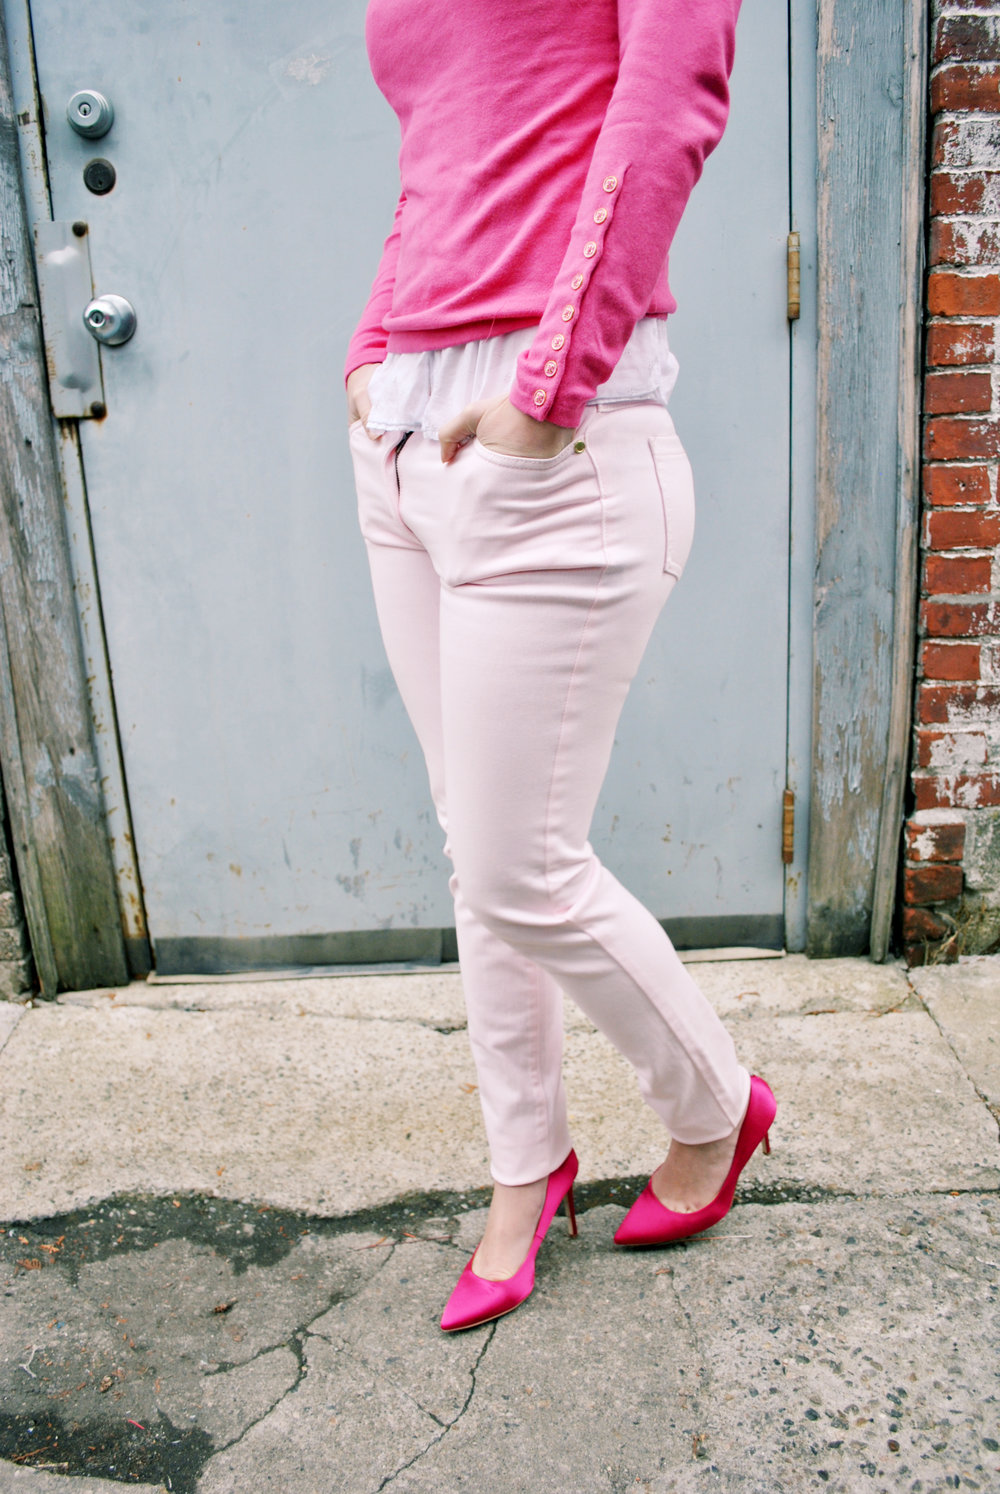 thoughtfulwish | betty cooper, riverdale, inspiration outfit, fashion, fashion blogger, bosblogger, boston blogger, meredith wish, j.mclaughlin, pink outfit, pink sweater, valentine's day outfit